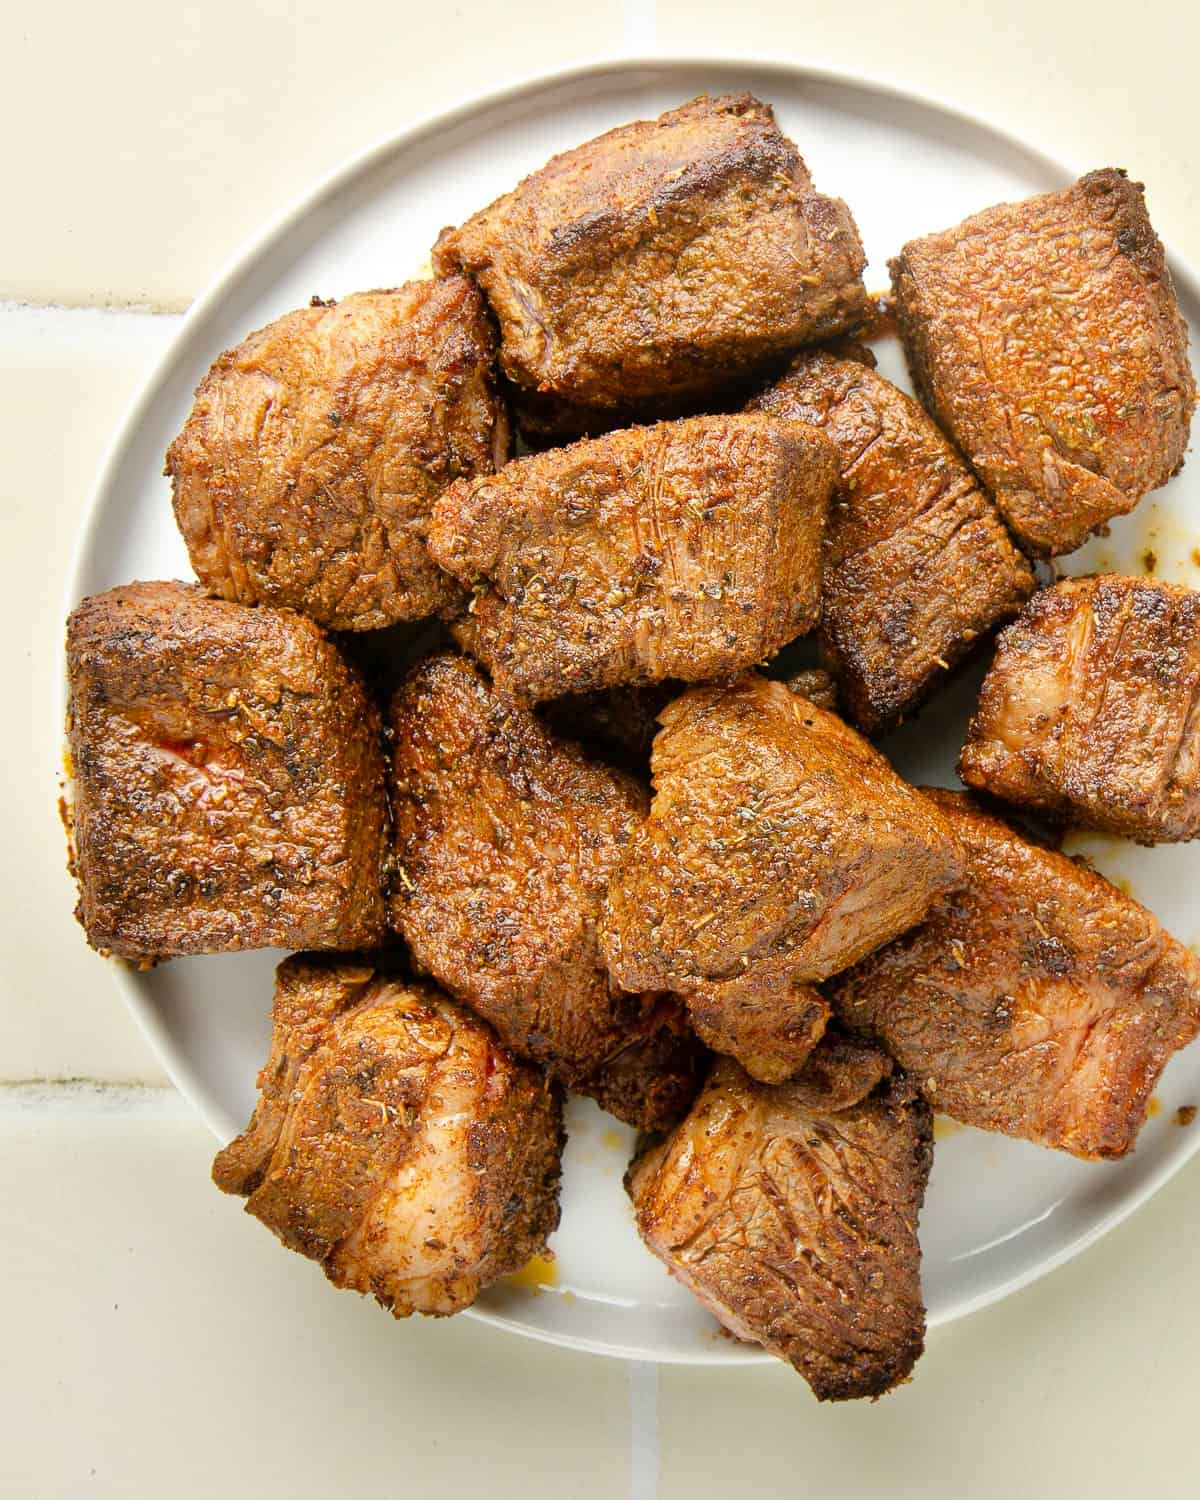 browned cubes of chuck roast in preparation of making the barbacoa beef. Browning is the first step after seasoning the beef cubes.